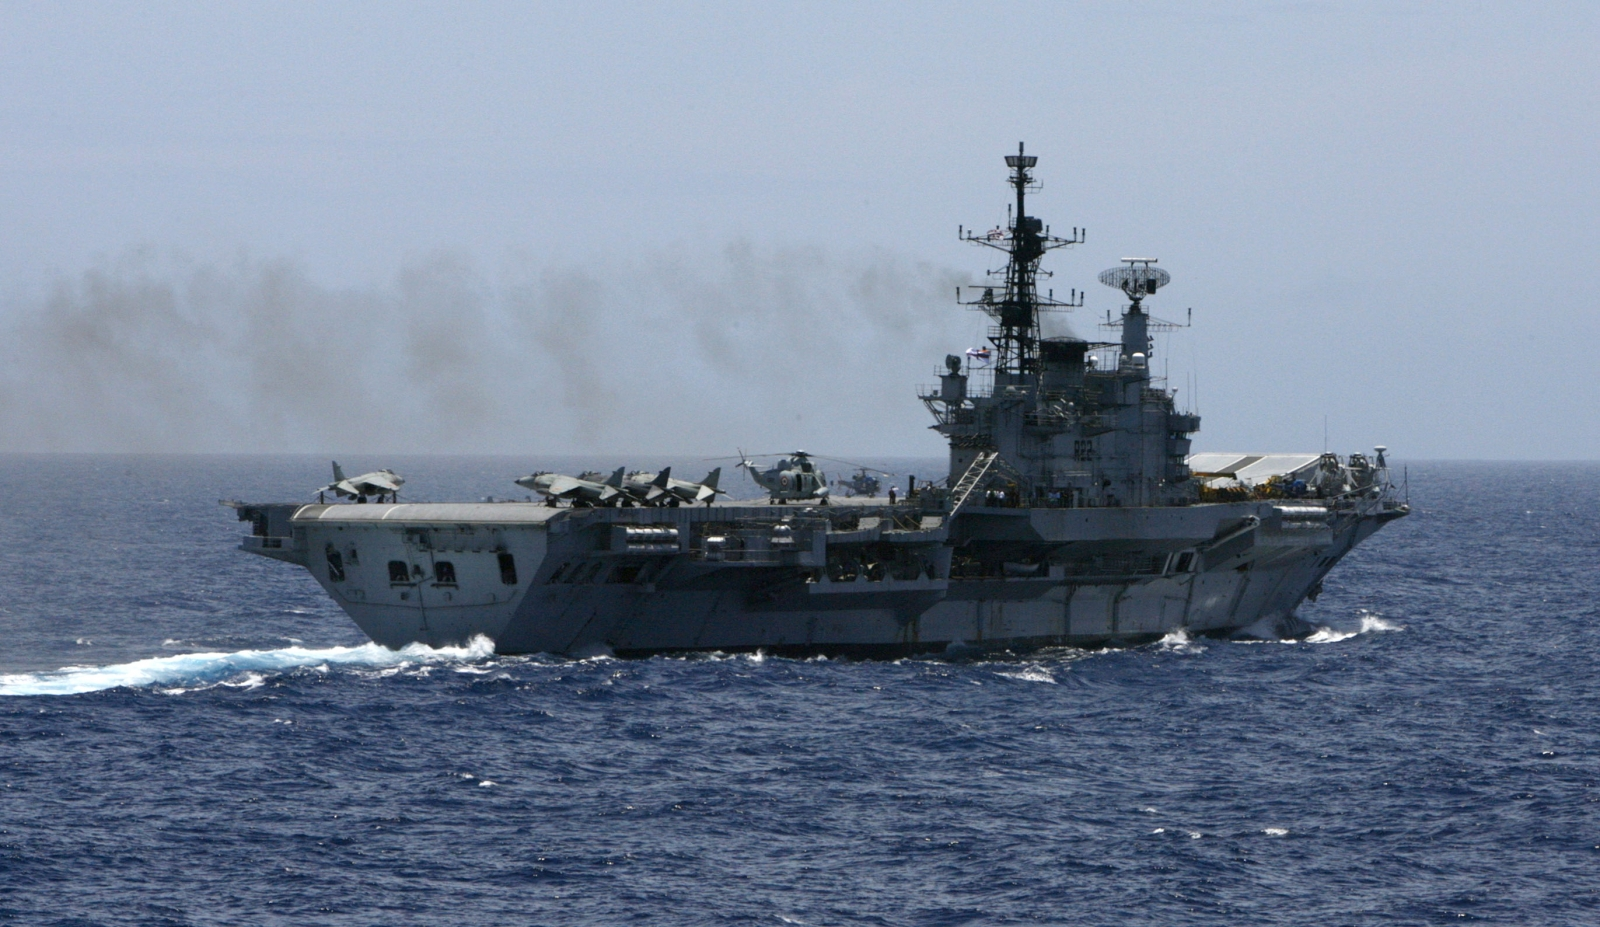 Indian navy INS Viraat